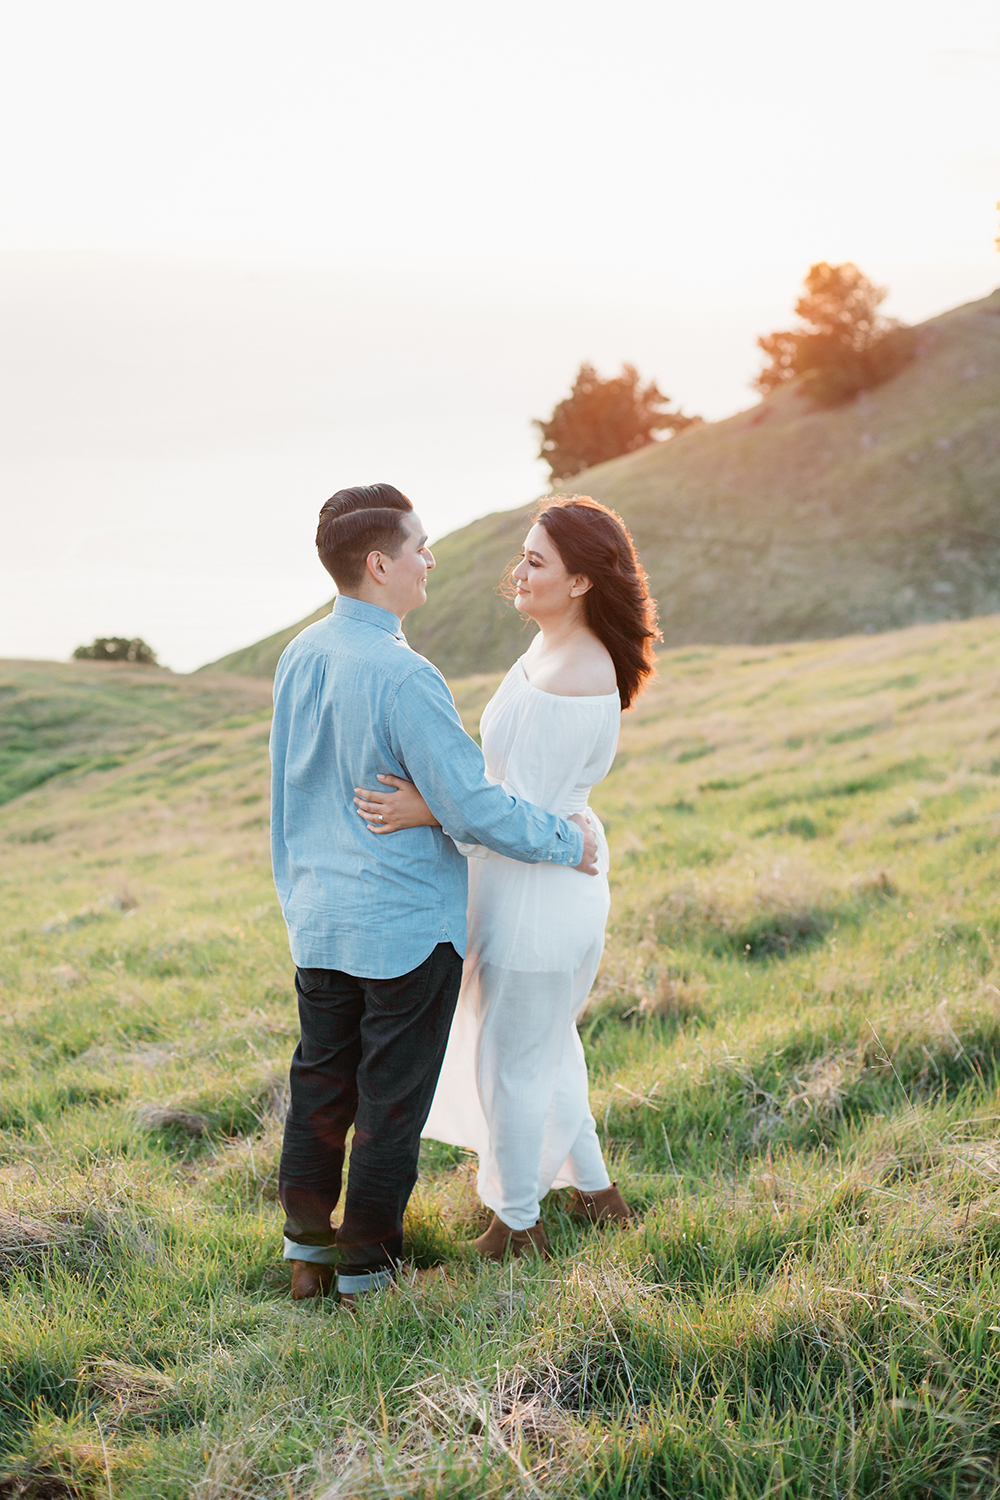 Couple at golden hour during their engagement session in Mount Tamalpais in Marin, California.